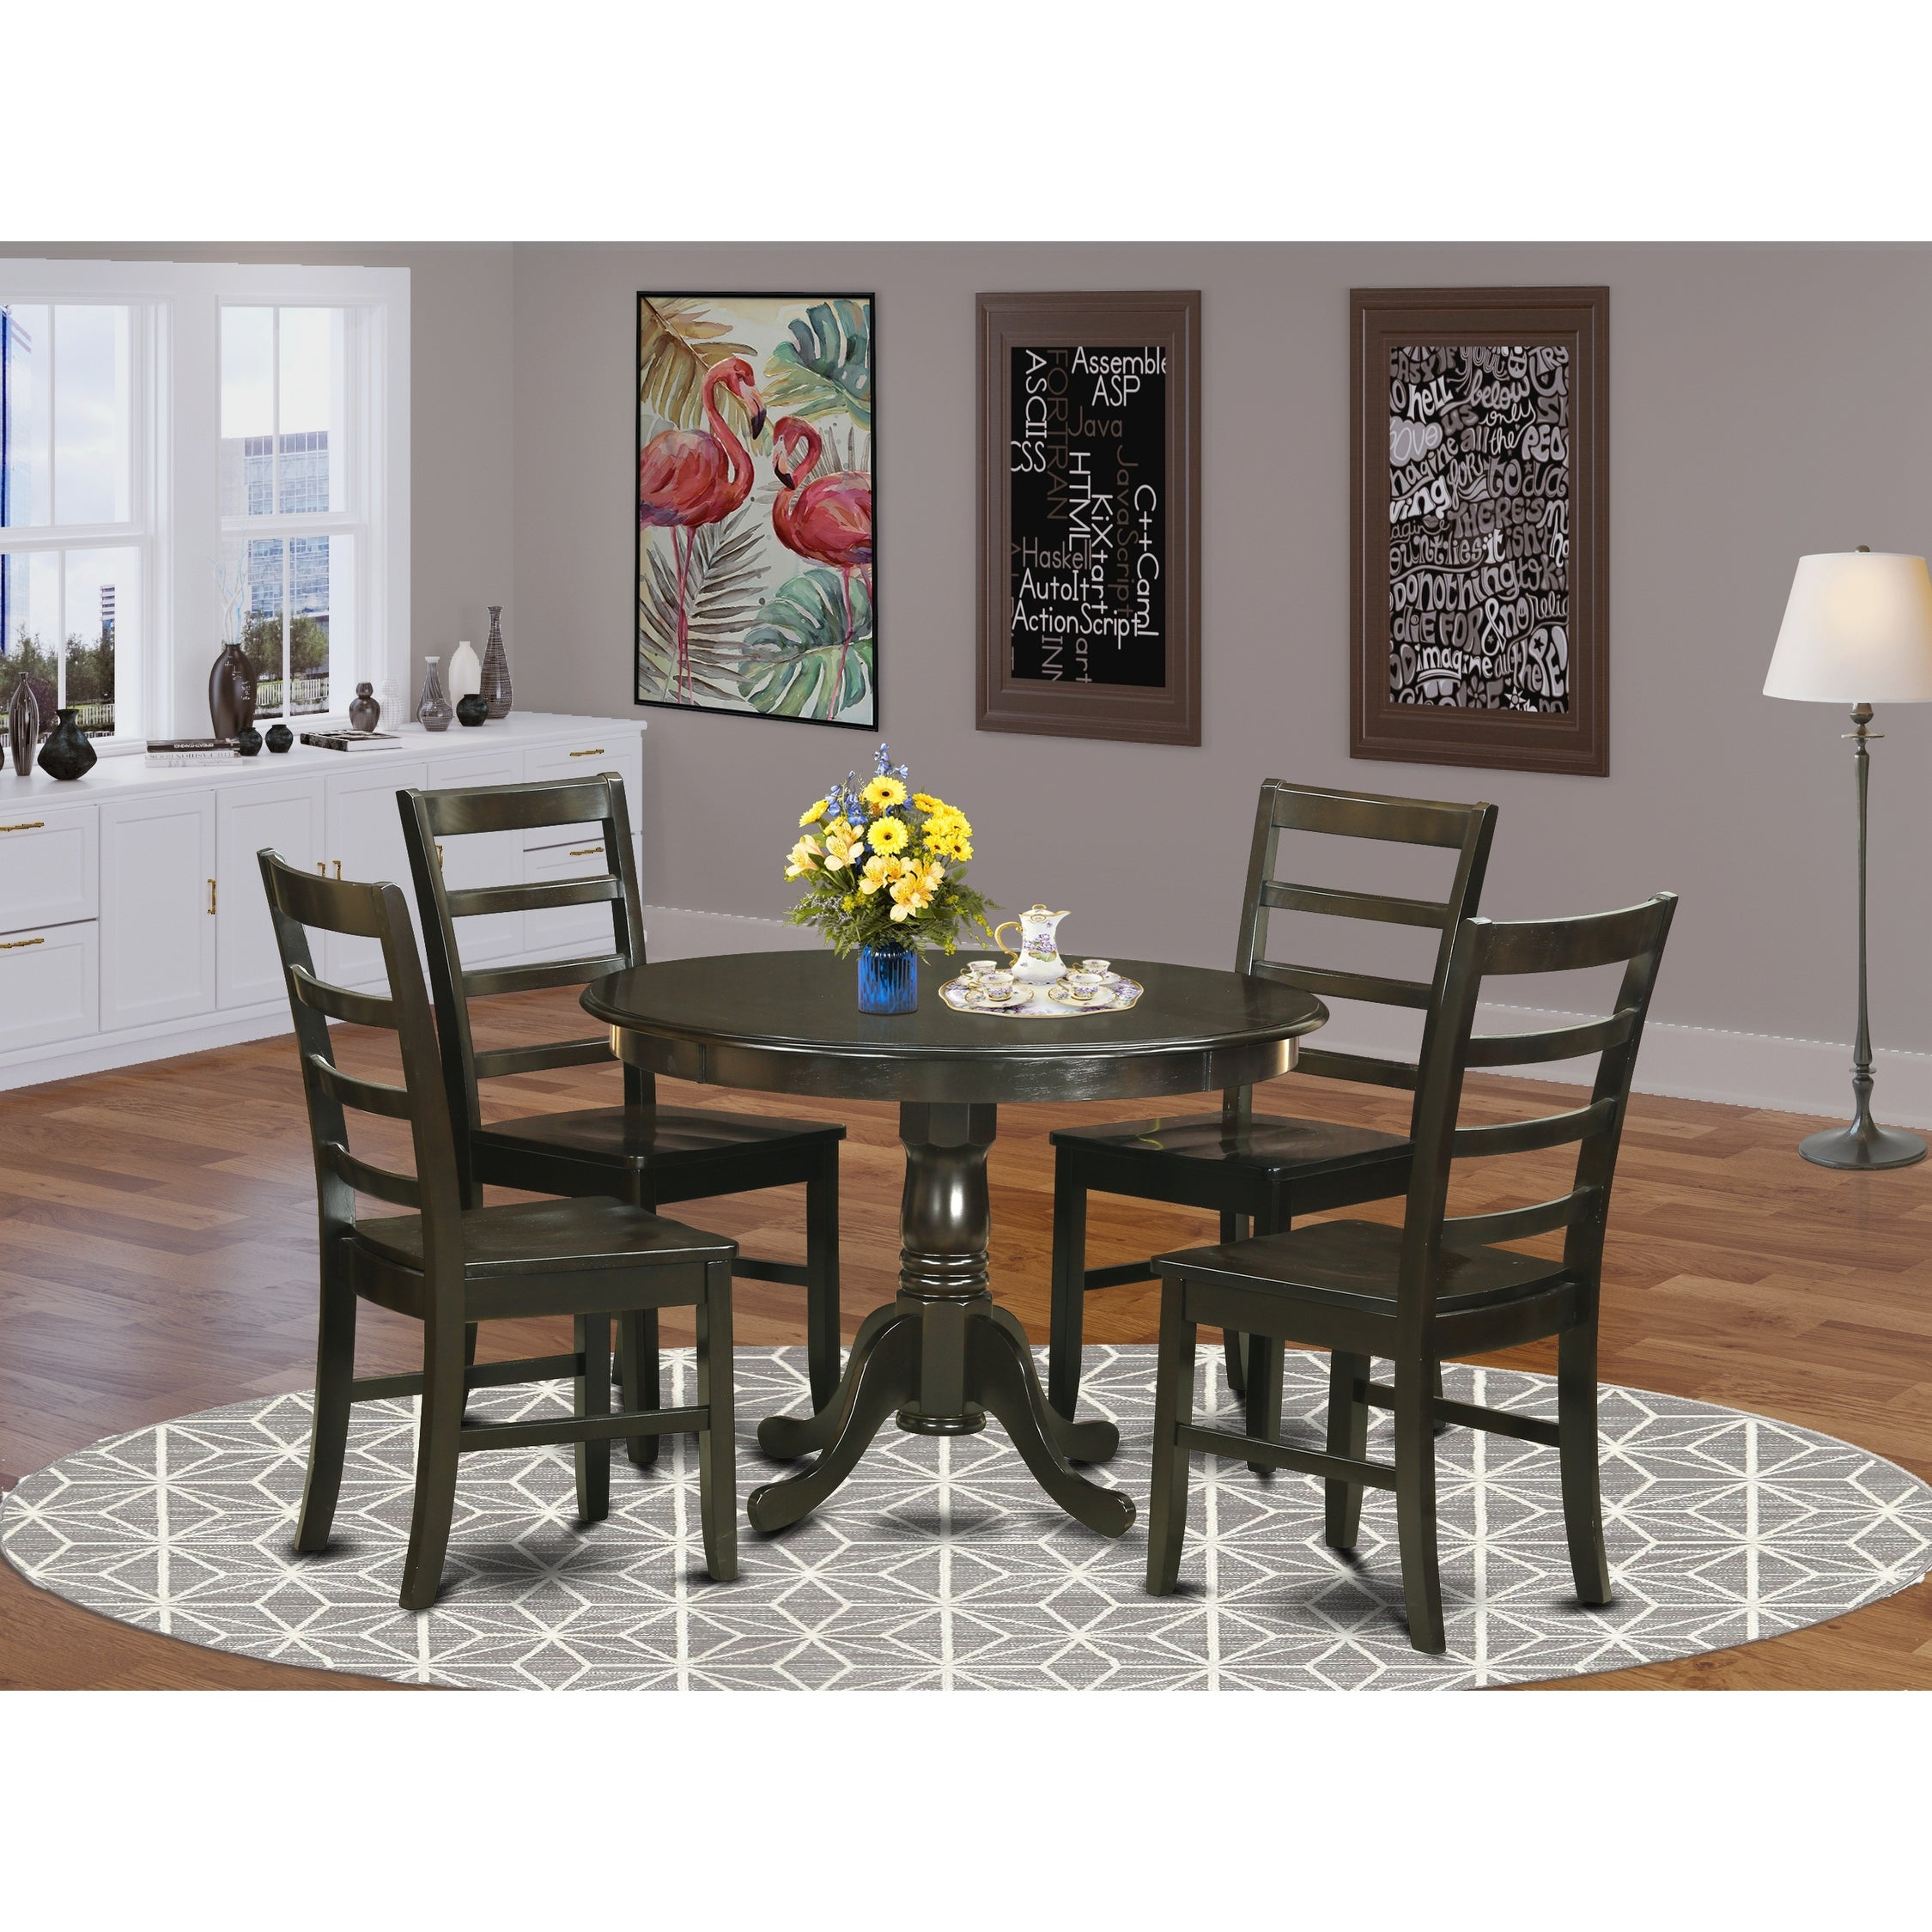 Hlpf5 Cap 5 Pc Small Kitchen Table Set Dining Table And 4 Chairs Overstock 17652199